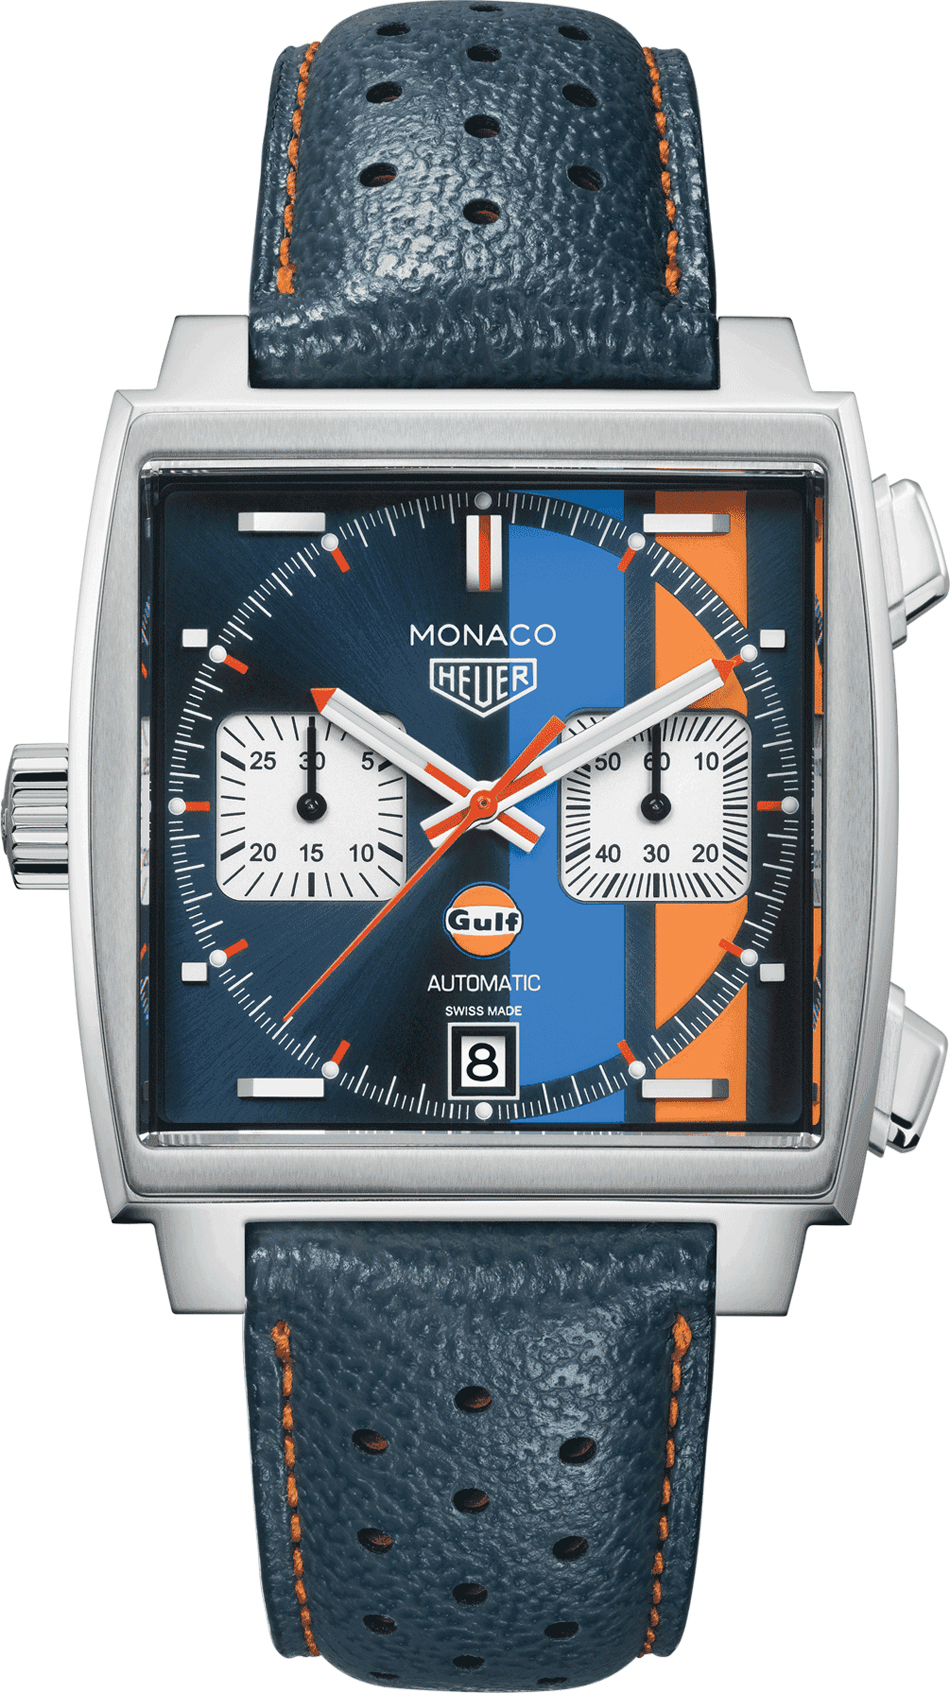 caw211r fc6401 tag heuer monaco gulf men 39 s watch. Black Bedroom Furniture Sets. Home Design Ideas